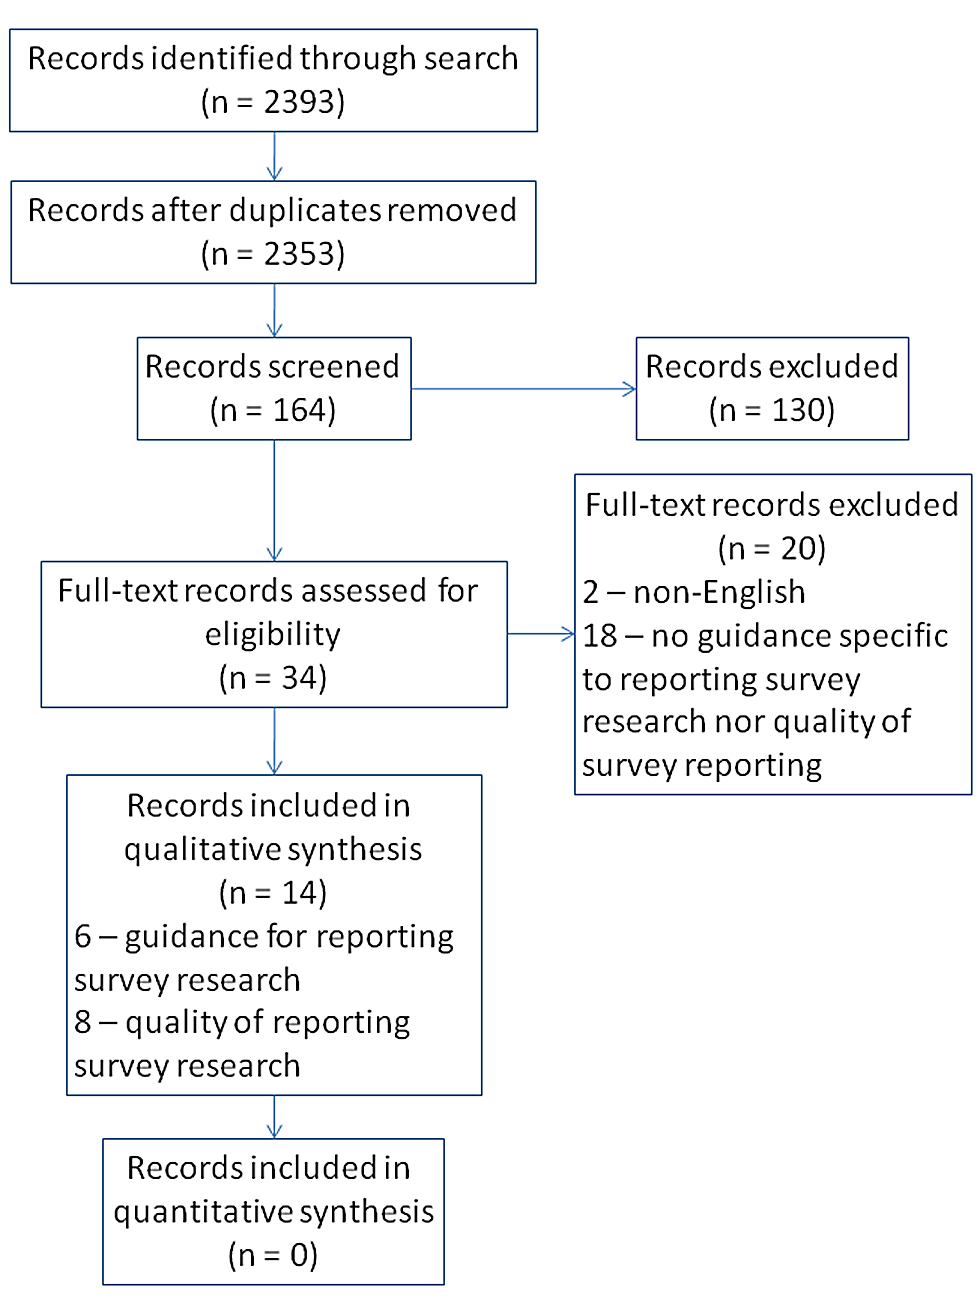 Flow diagram of records and reports—Guidelines for survey research and evidence on the quality of reporting of surveys.